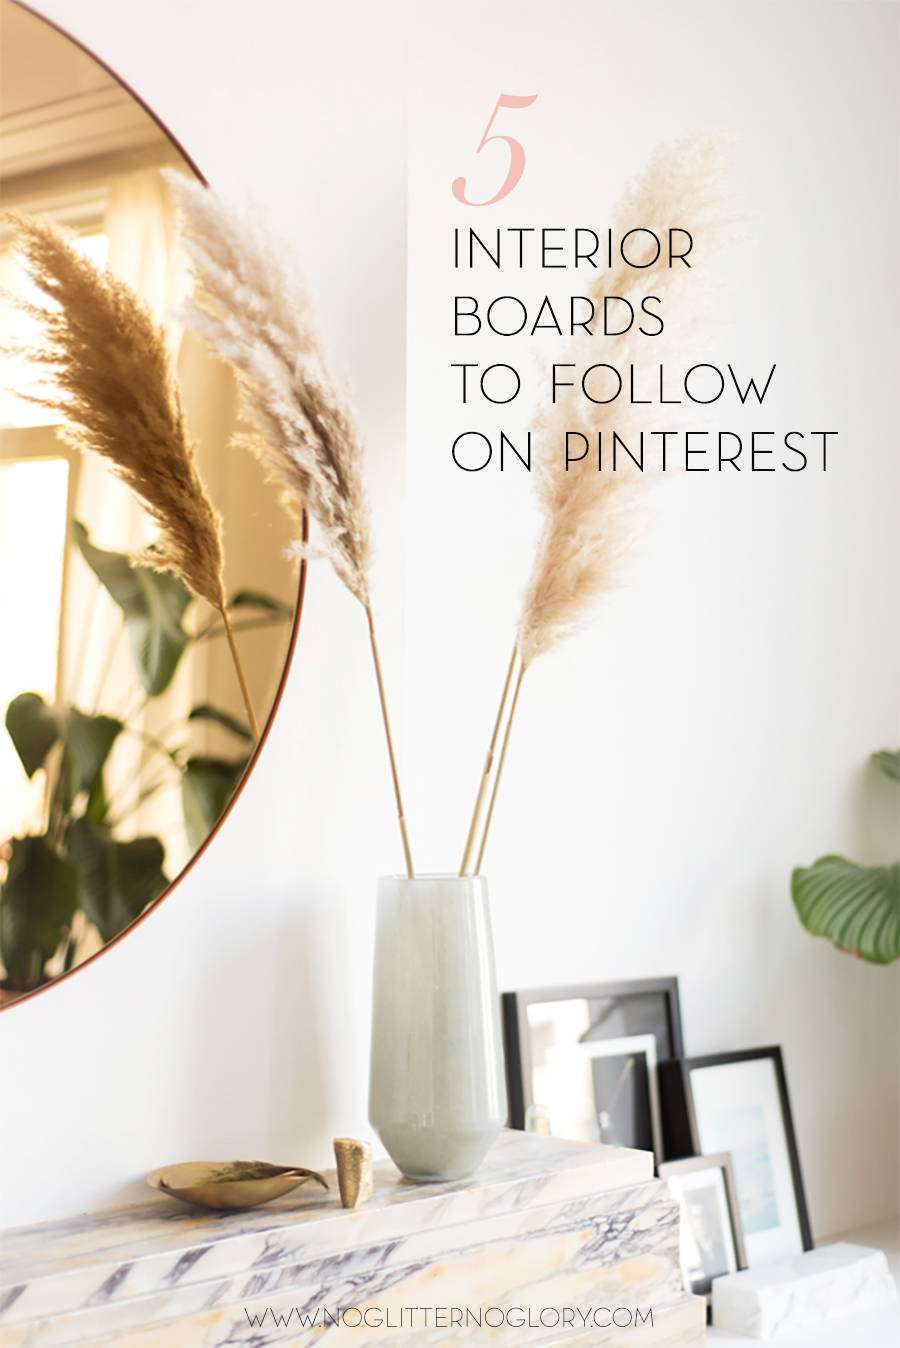 5 interior boards to follow on pinterest -noglitternoglory.com